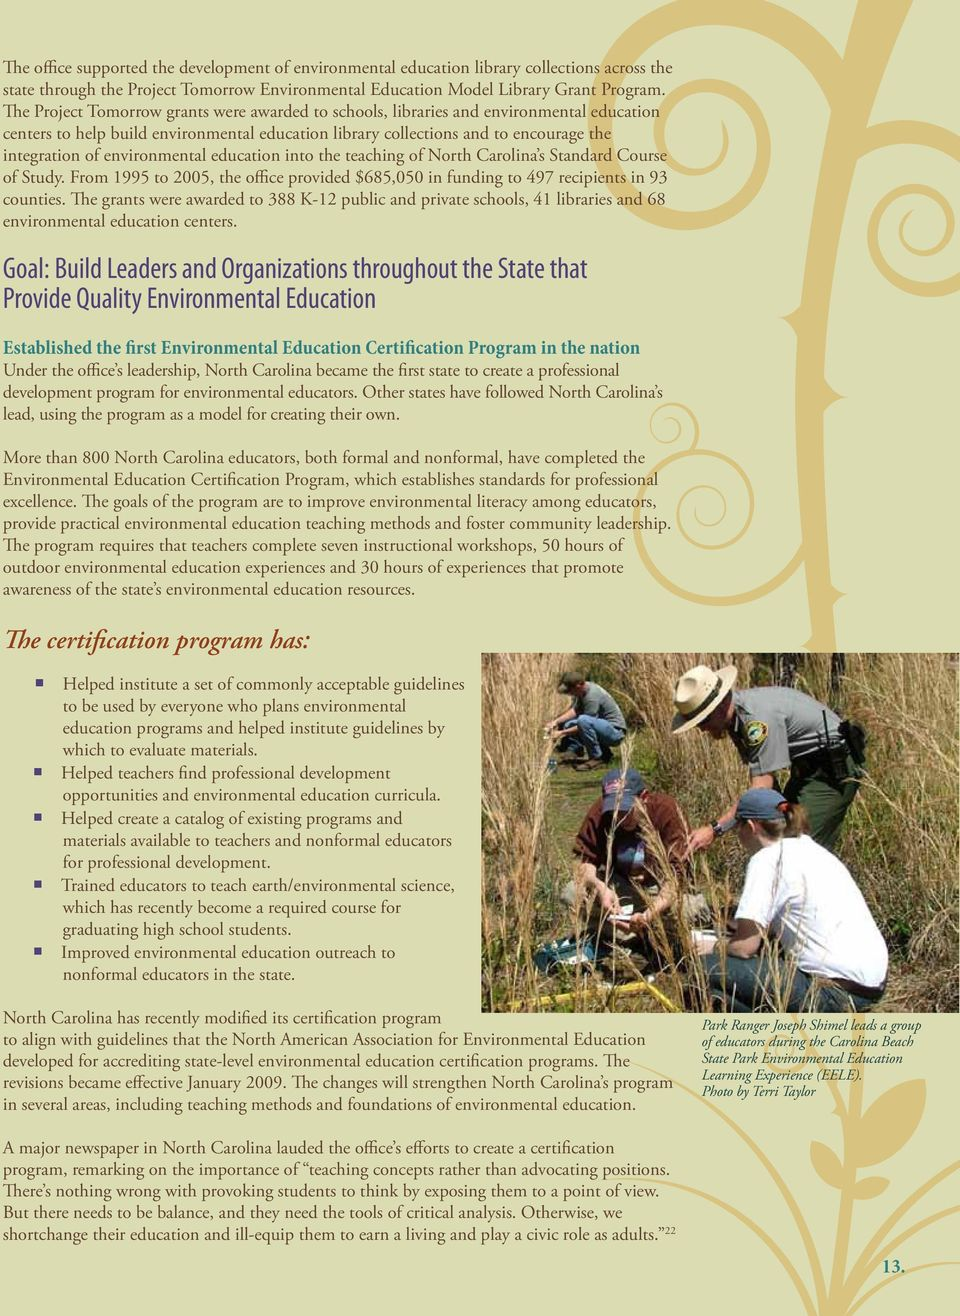 environmental education into the teaching of North Carolina s Standard Course of Study. From 1995 to 2005, the office provided $685,050 in funding to 497 recipients in 93 counties.